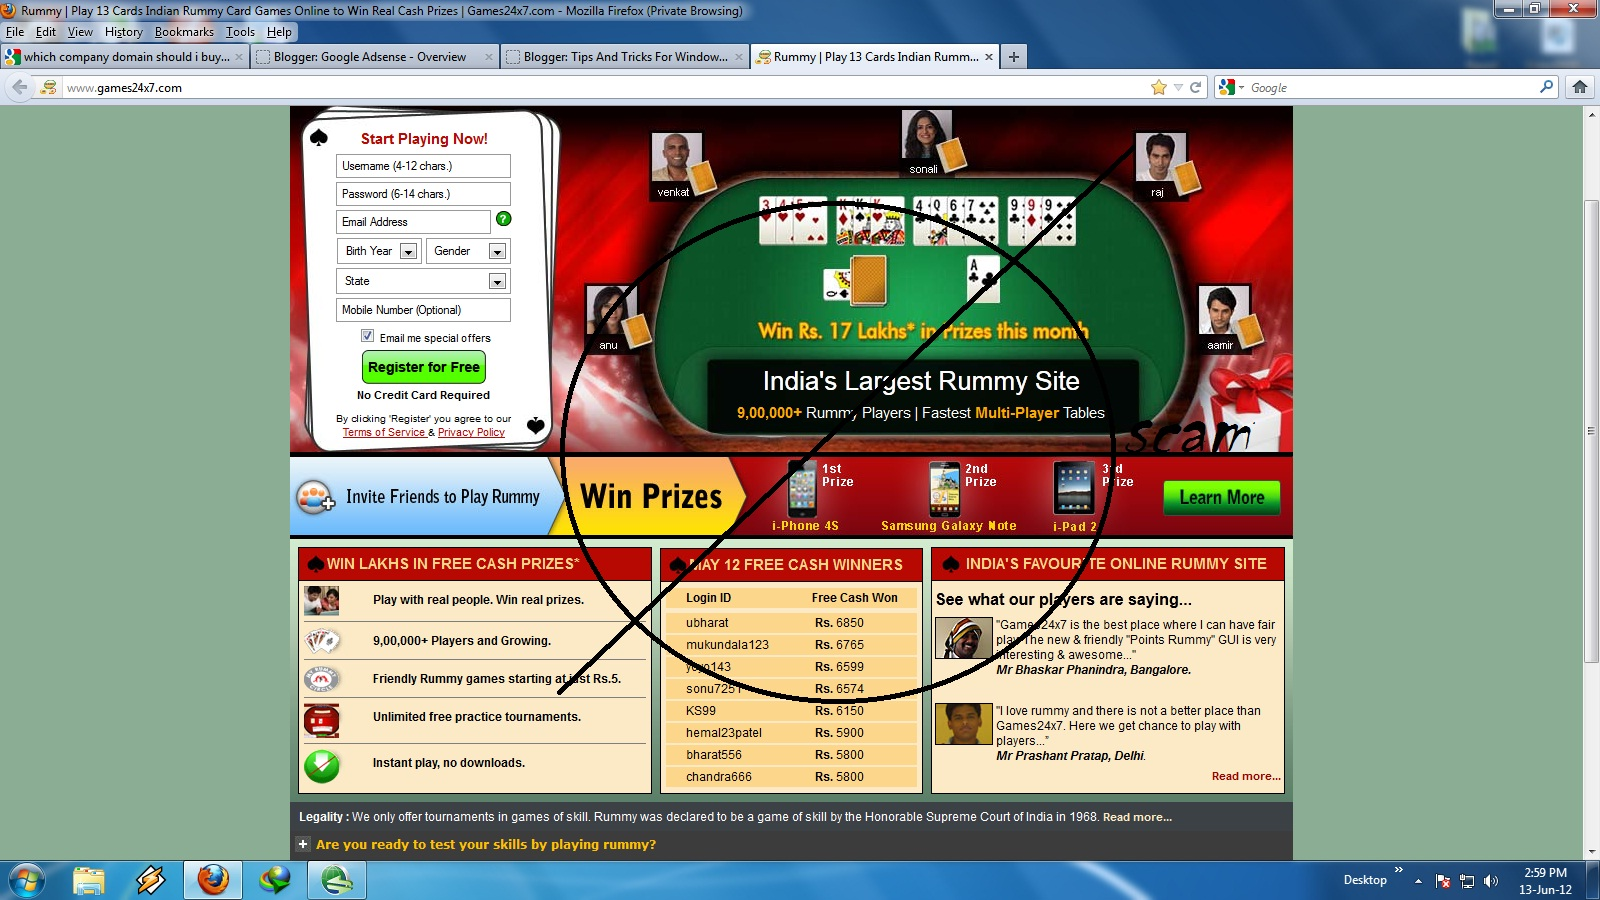 Online gambling win cash commerce casino lapc 2008